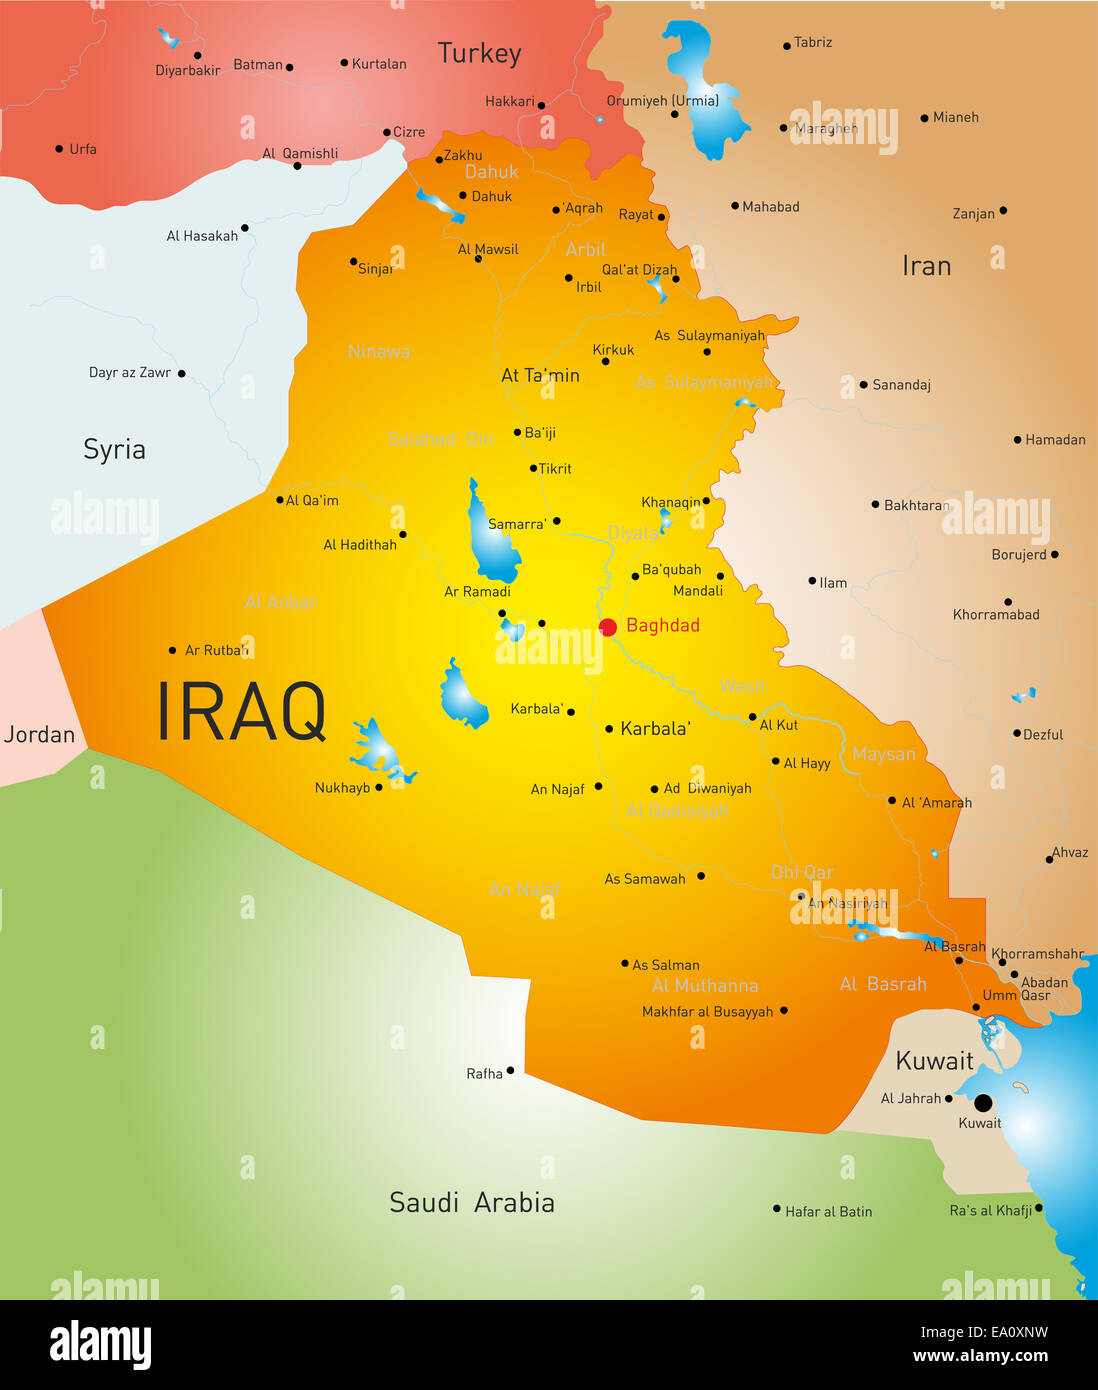 Iraq country stock photo 75009029 alamy iraq country gumiabroncs Images